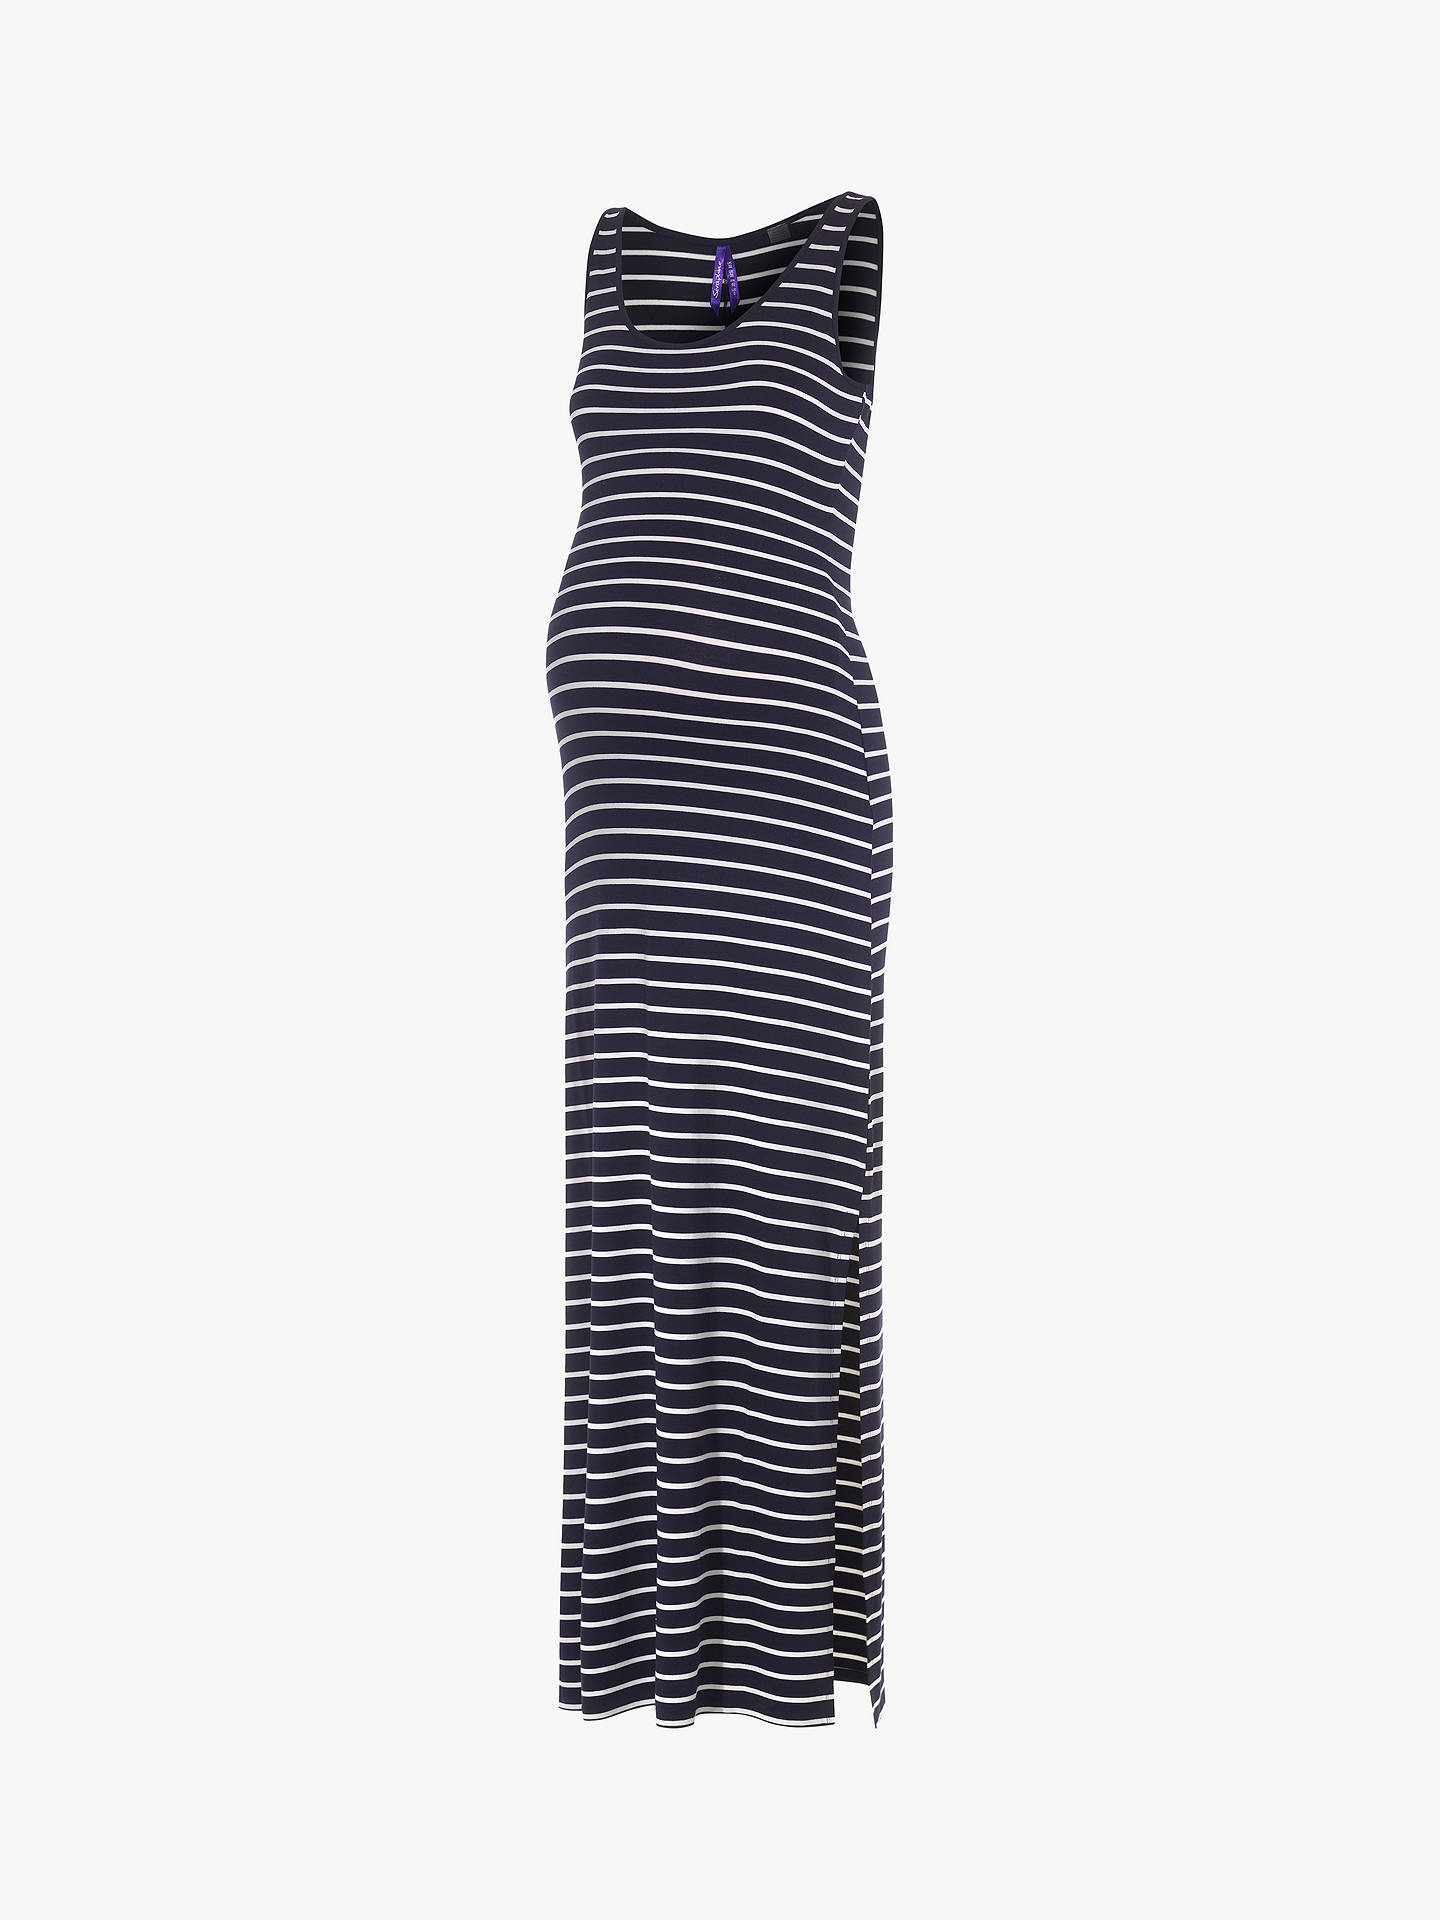 288f9757004 ... Buy Séraphine Magda Stripe Maxi Dress, Blue, 14 Online at johnlewis.com